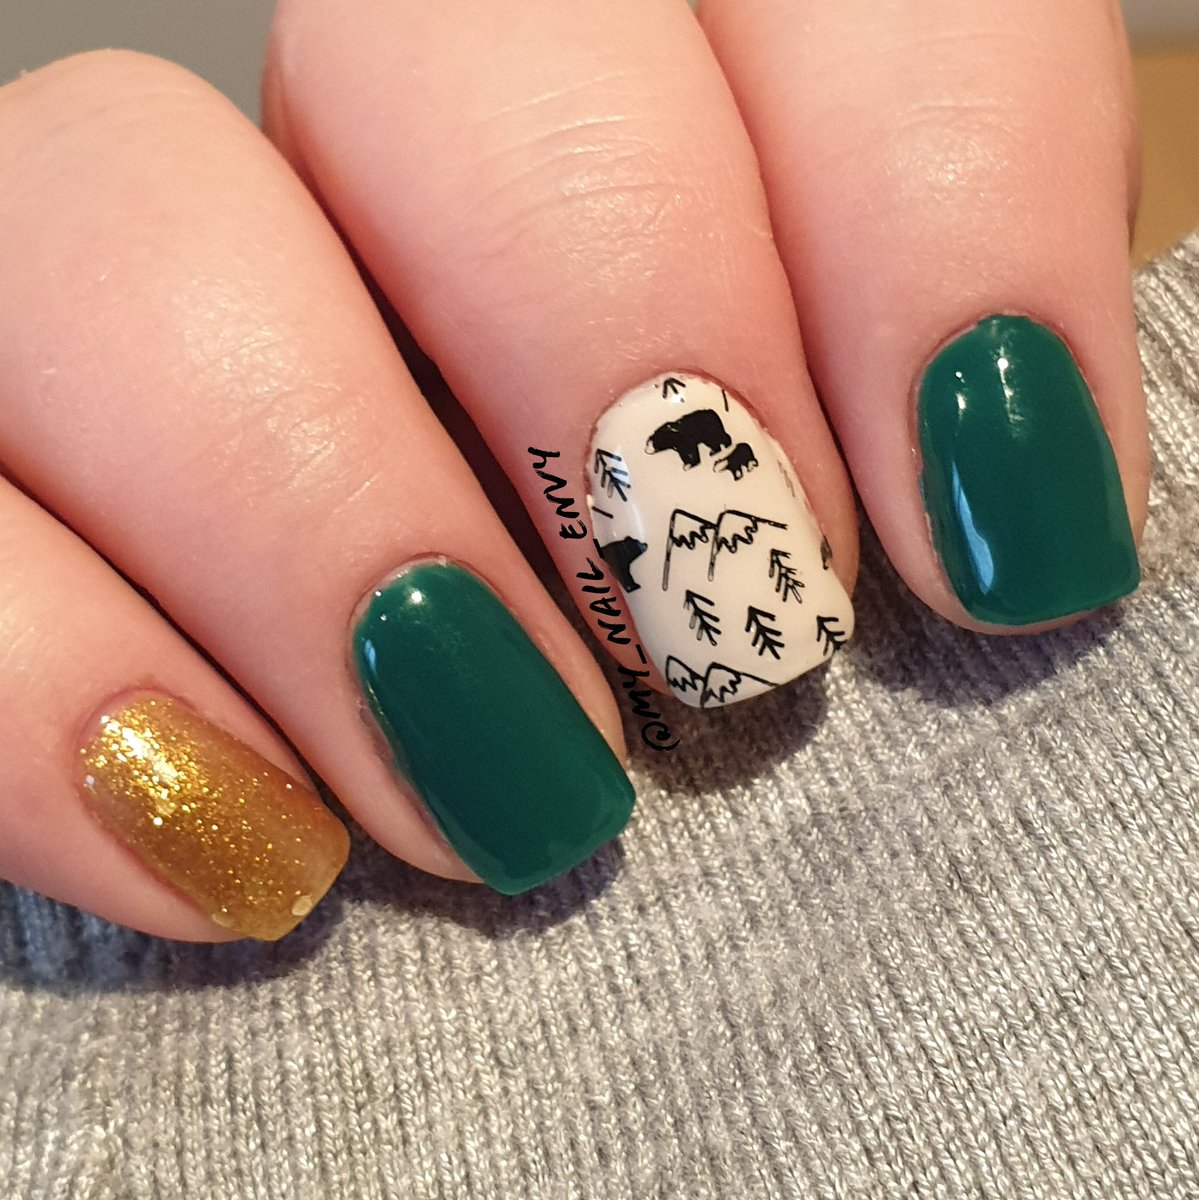 I have been eyeing out this cute stamping image for months now so it is finally time to use it #nailart #shortnails #naturalnails #nails #mani #nailsaddict #nailblogger #nailspiration #winternails #bearnails #woodlandcreaturesnails #bears #greennails #woodlandcreaturespic.twitter.com/KrPCqJnQZe